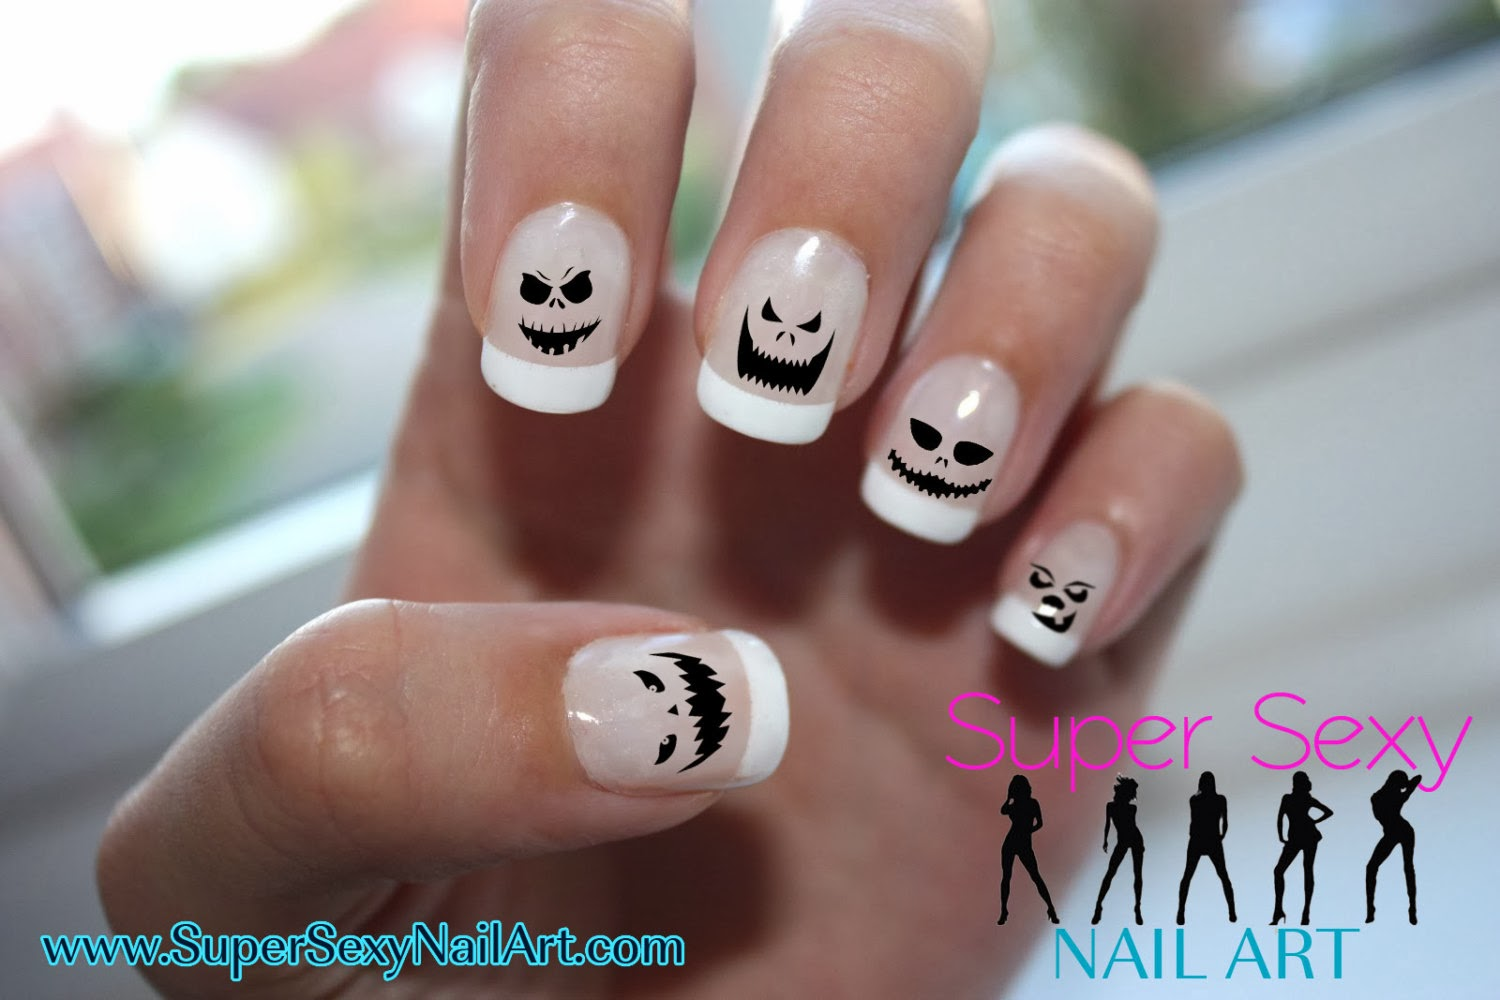 24 Halloween Scary Pumpkin Faces graphic art nail designs for your fingers  and toes. - Halloween Scary Pumpkin Nail Art Skullsandstuff